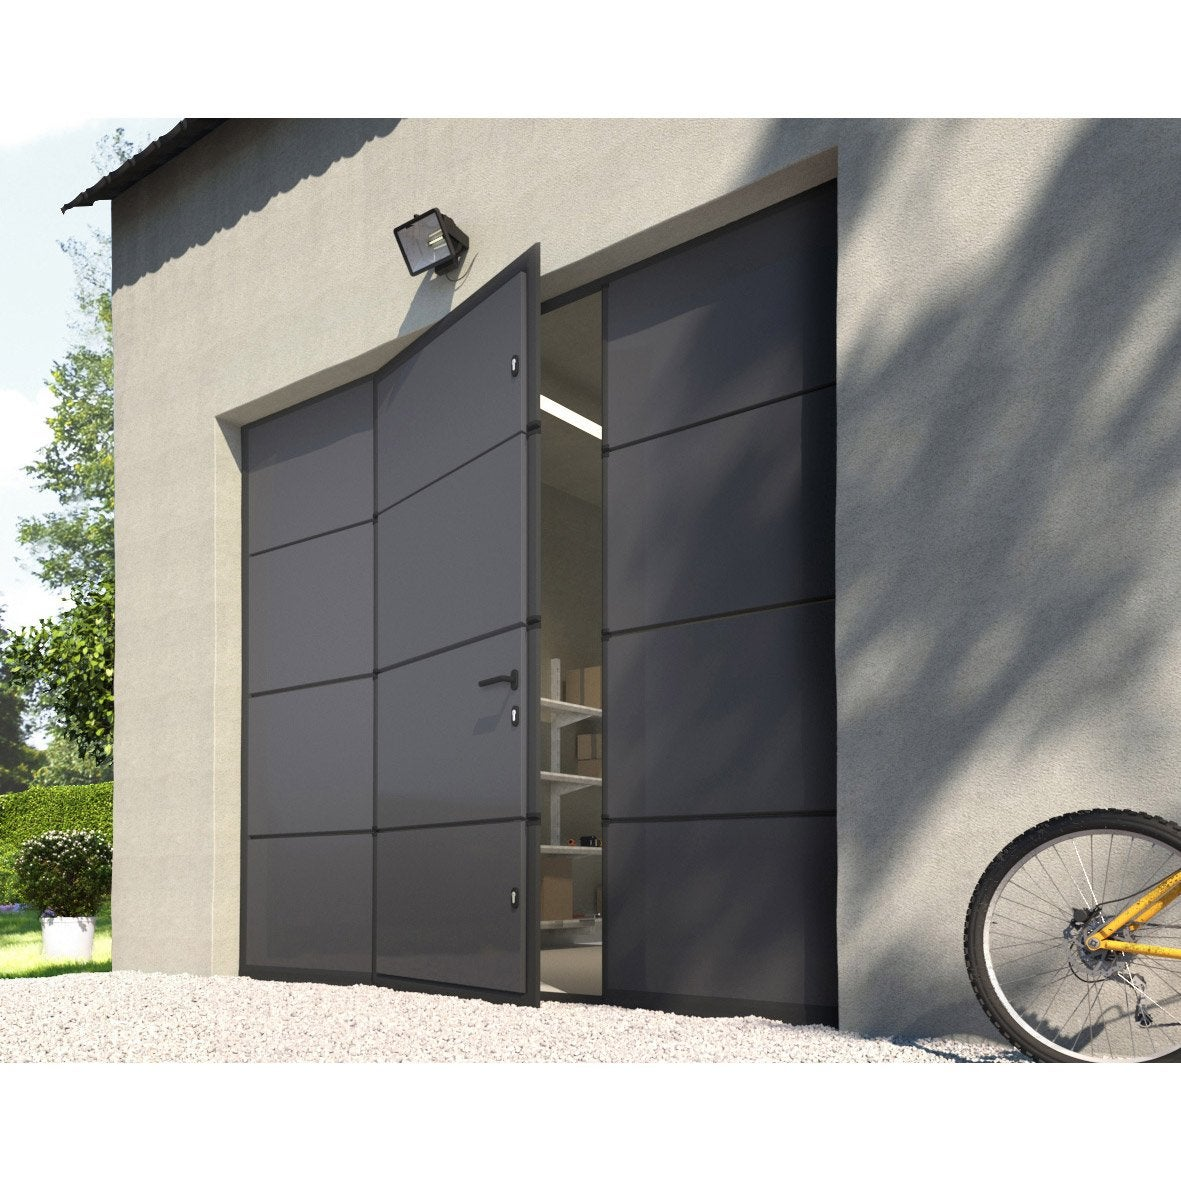 Hauteur porte de garage sectionnelle id es de conception sont int ressants for Porte de garage coulissante motorisee